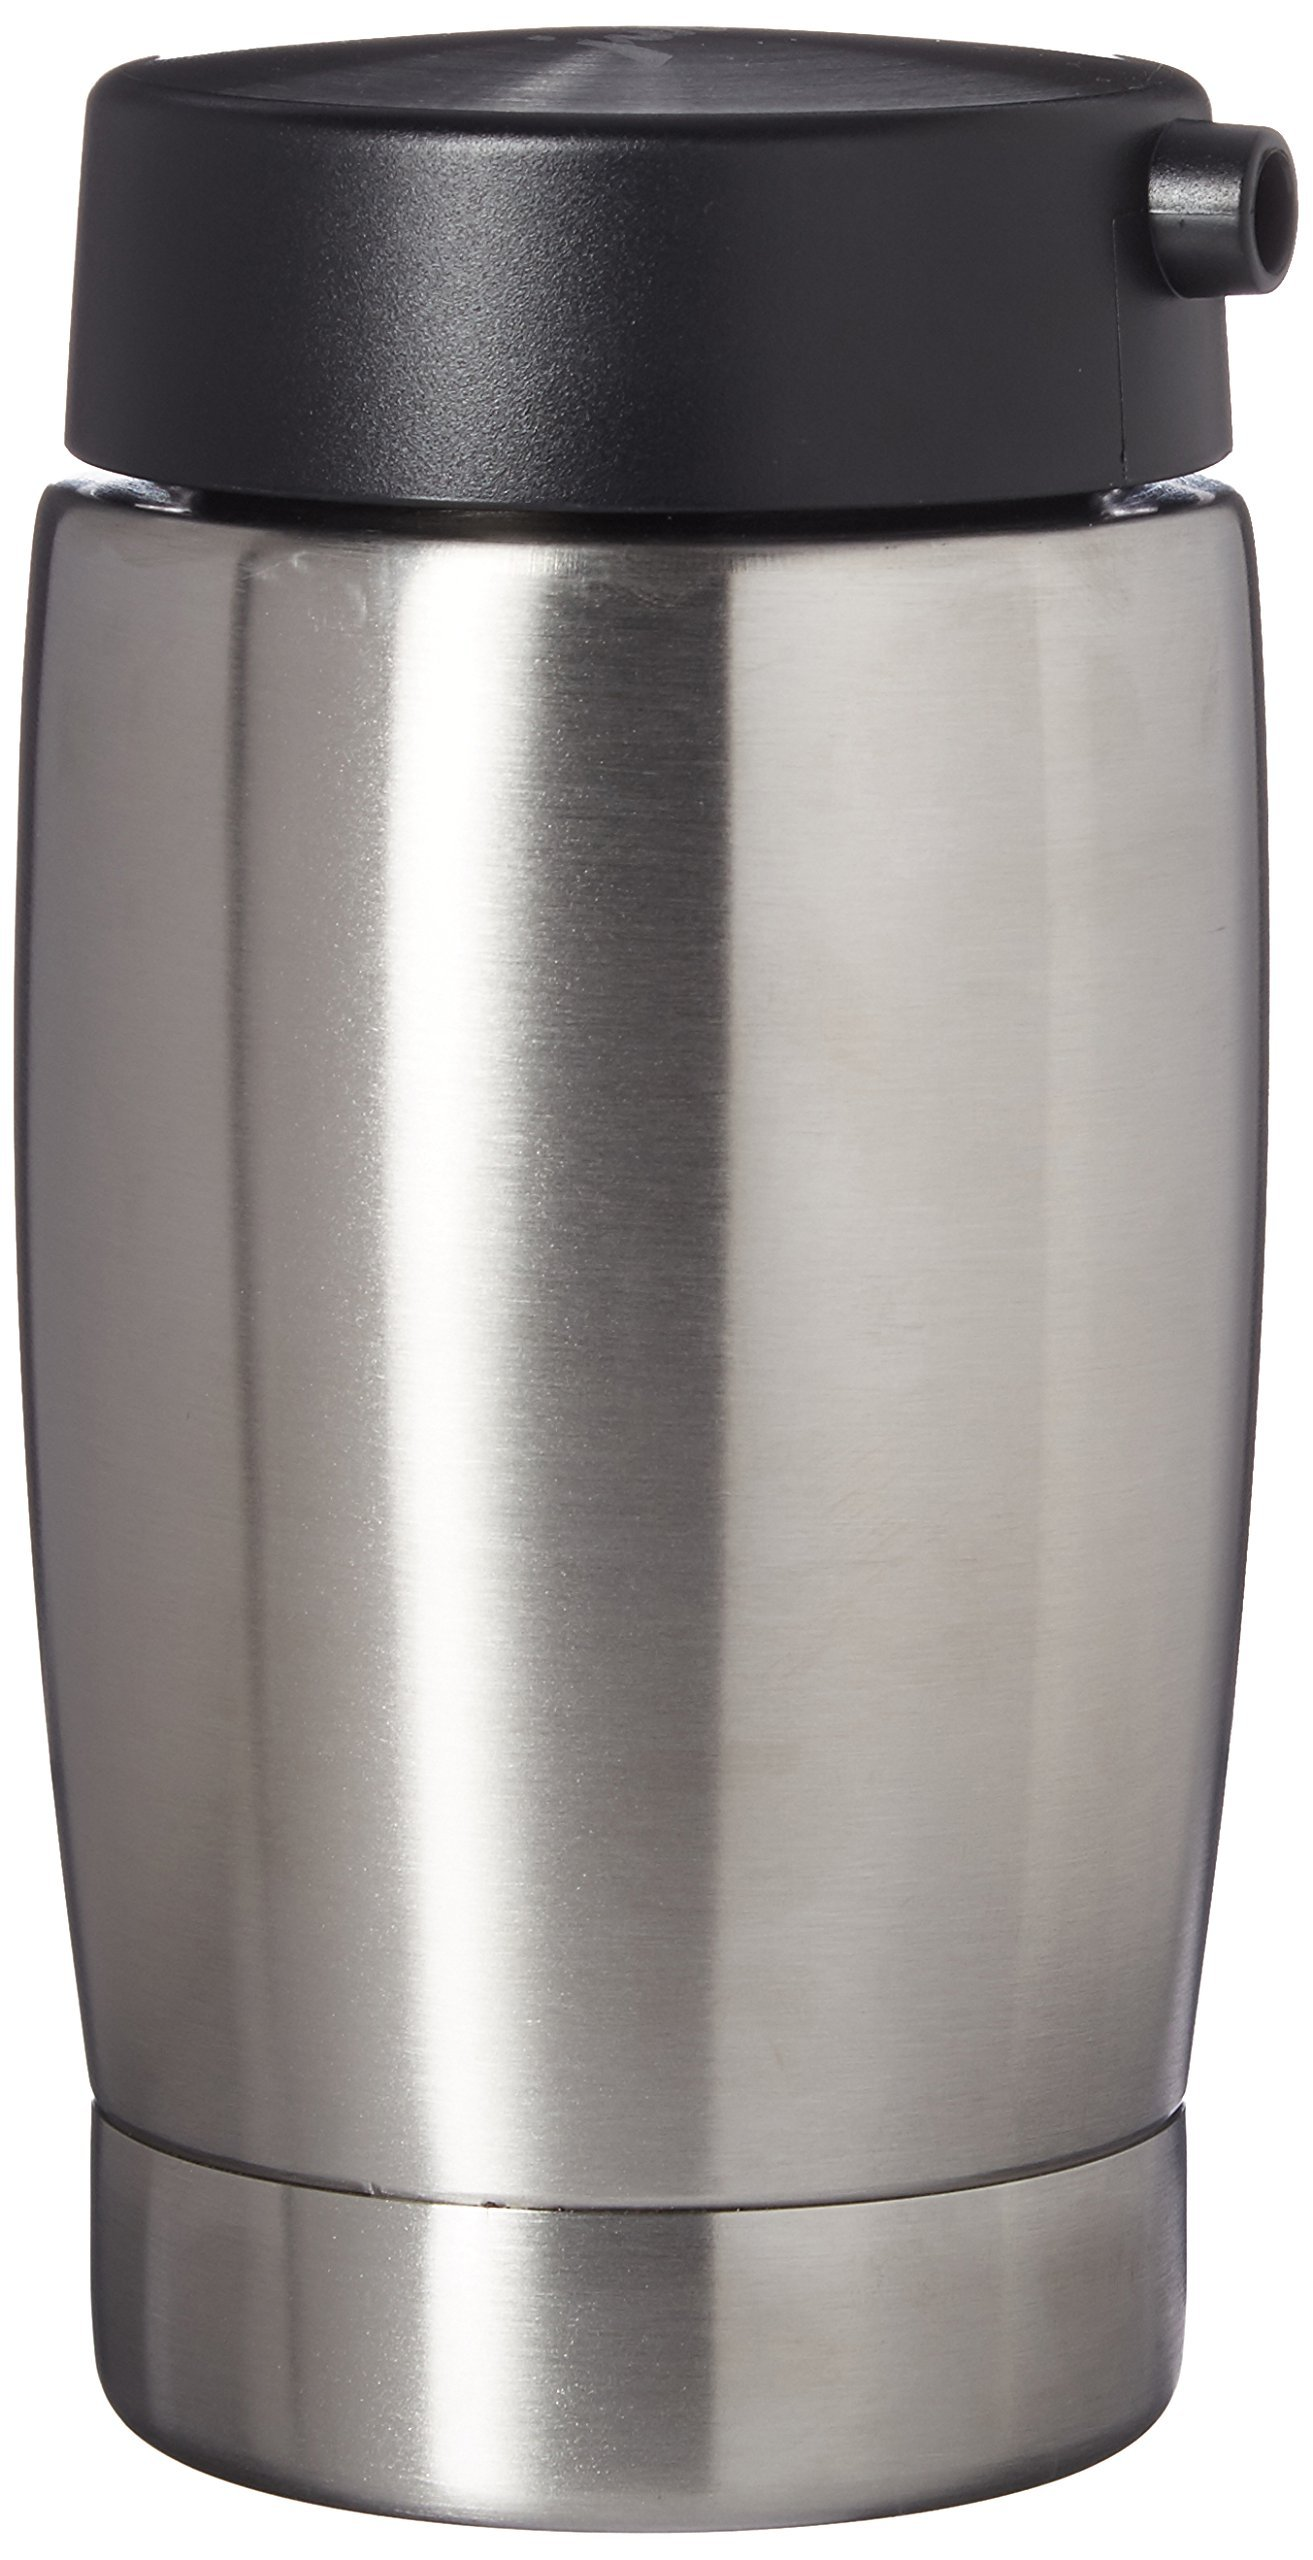 Jura 68166 14-Ounce Stainless Milk Container with Lid by Jura